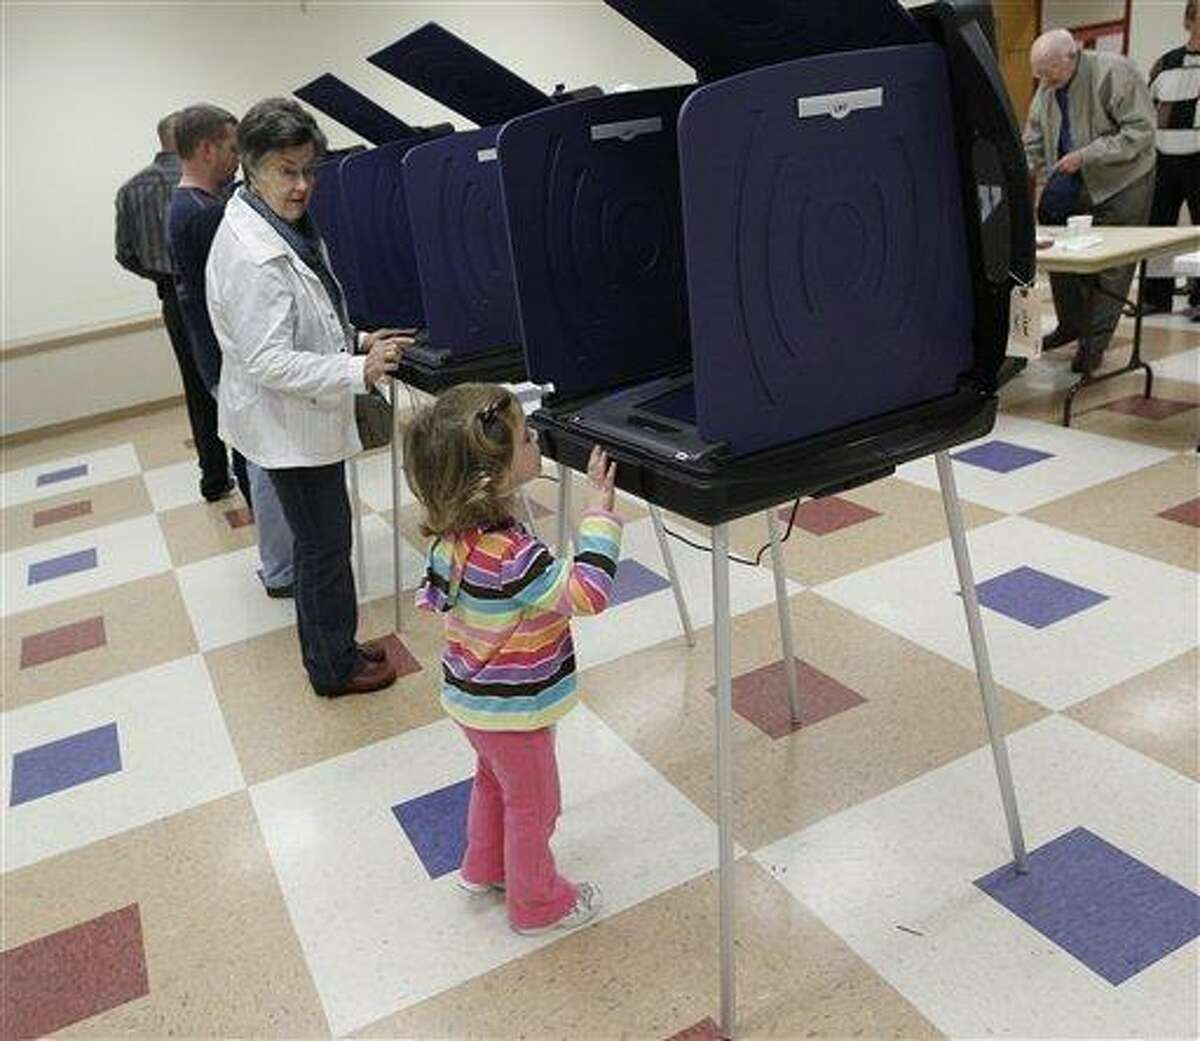 Mary Michaelis, left, prepares to vote in the South Carolina Republican presidential primary as her granddaughter, Reese Ward, 3, looks over a neighboring voting booth in Columbia, S.C., Saturday. Associated Press